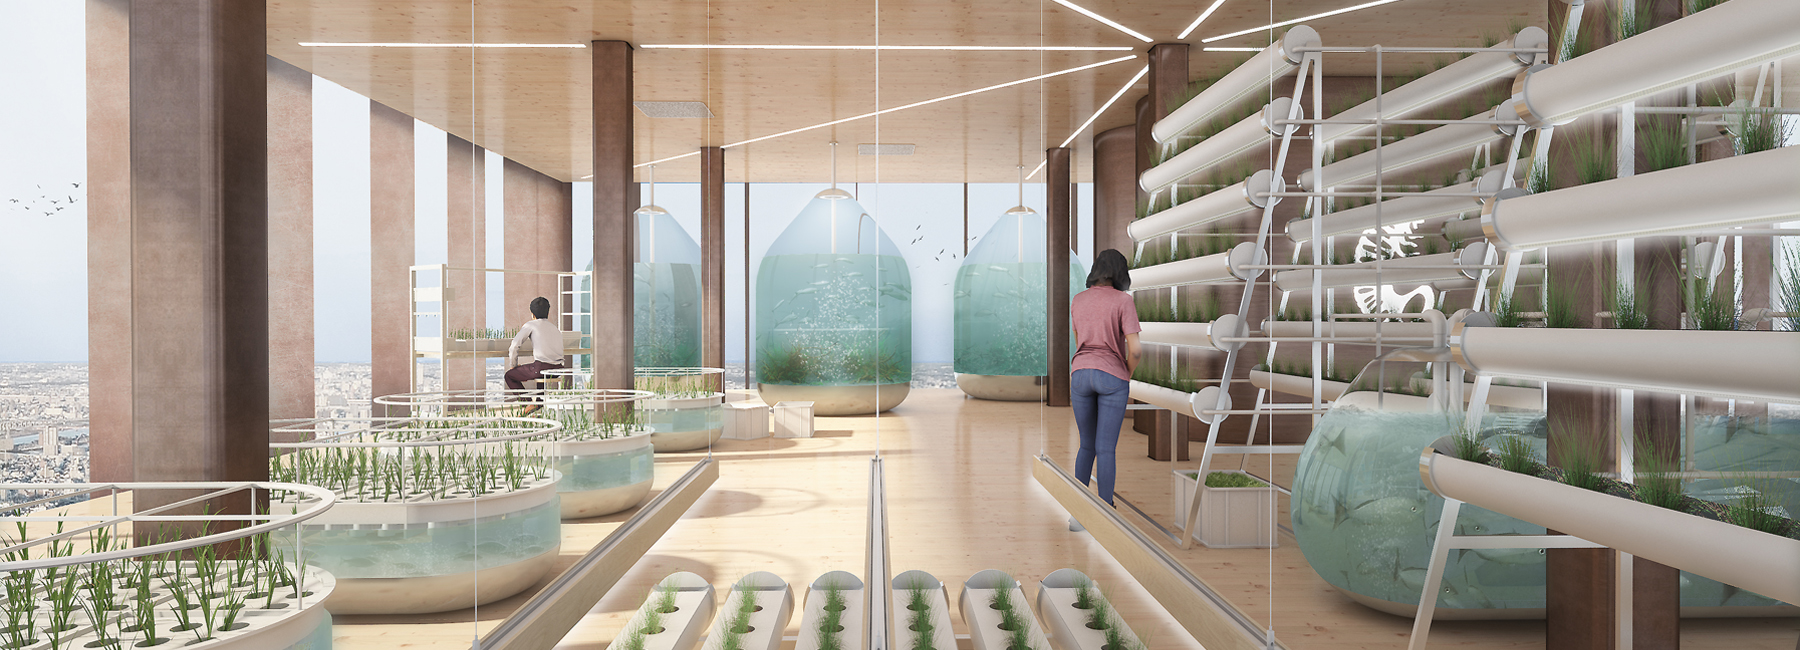 Vertical superfarms to produce inner-city crops